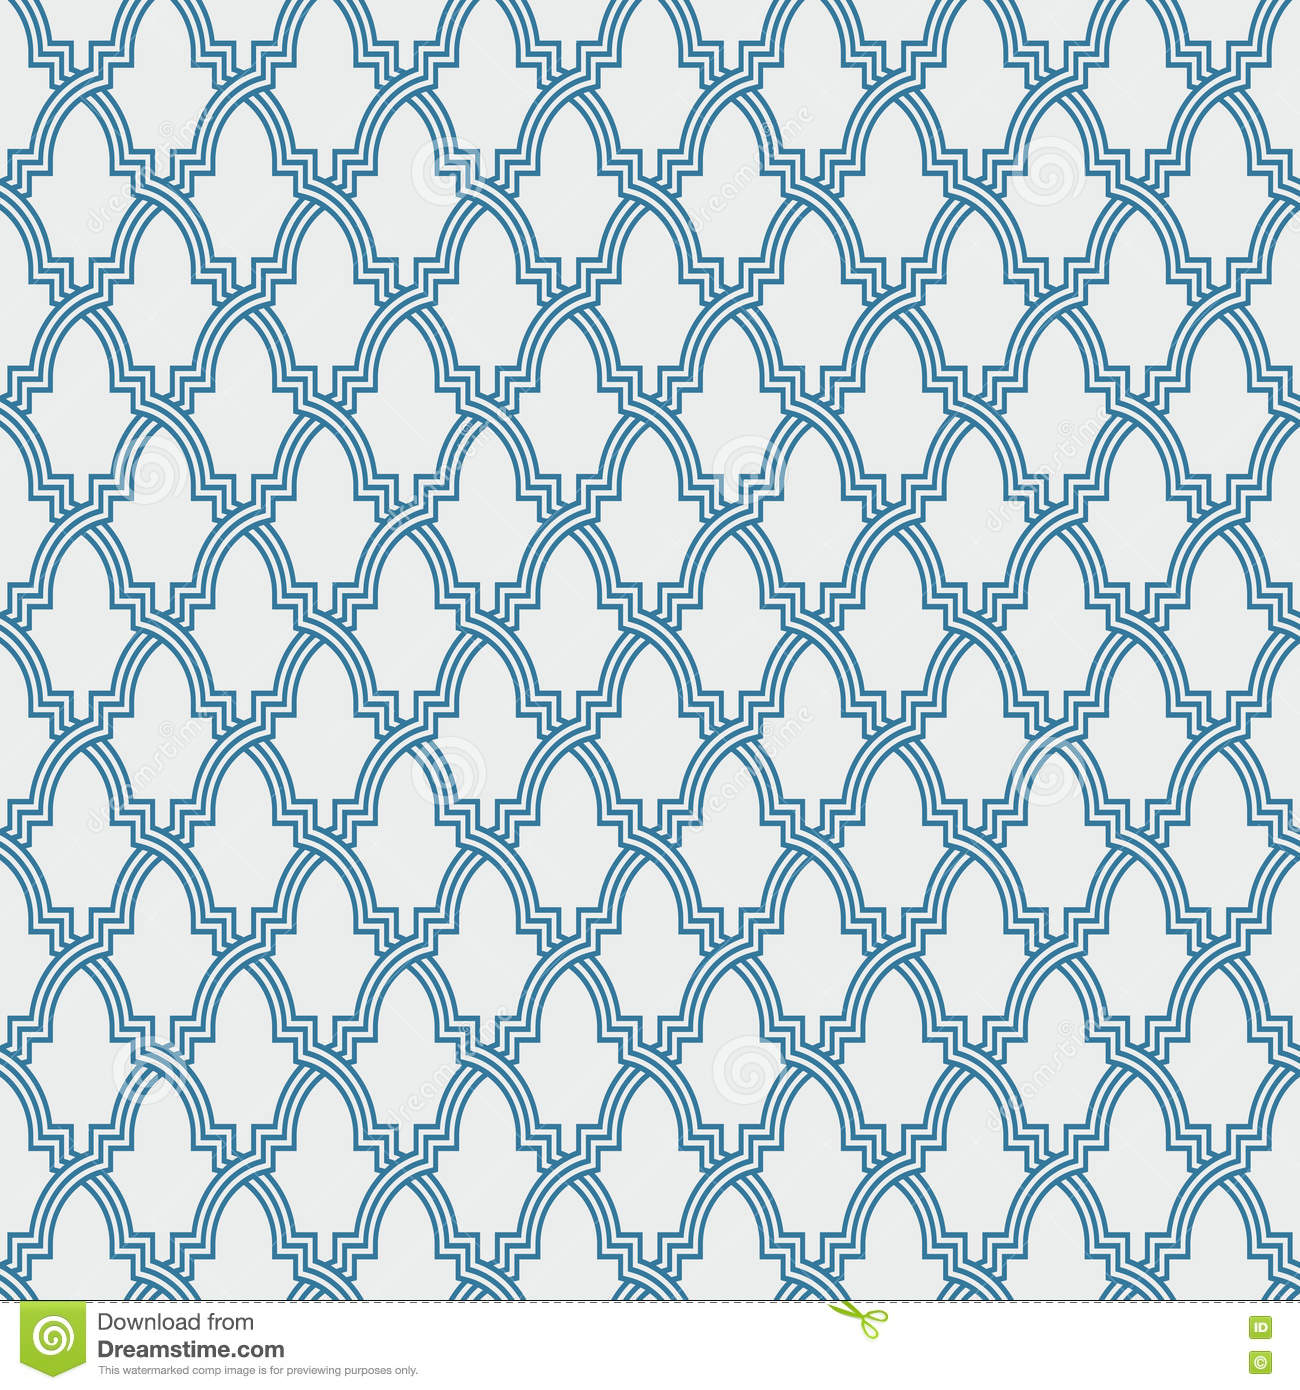 Easy Geometric Patterns New Design Ideas